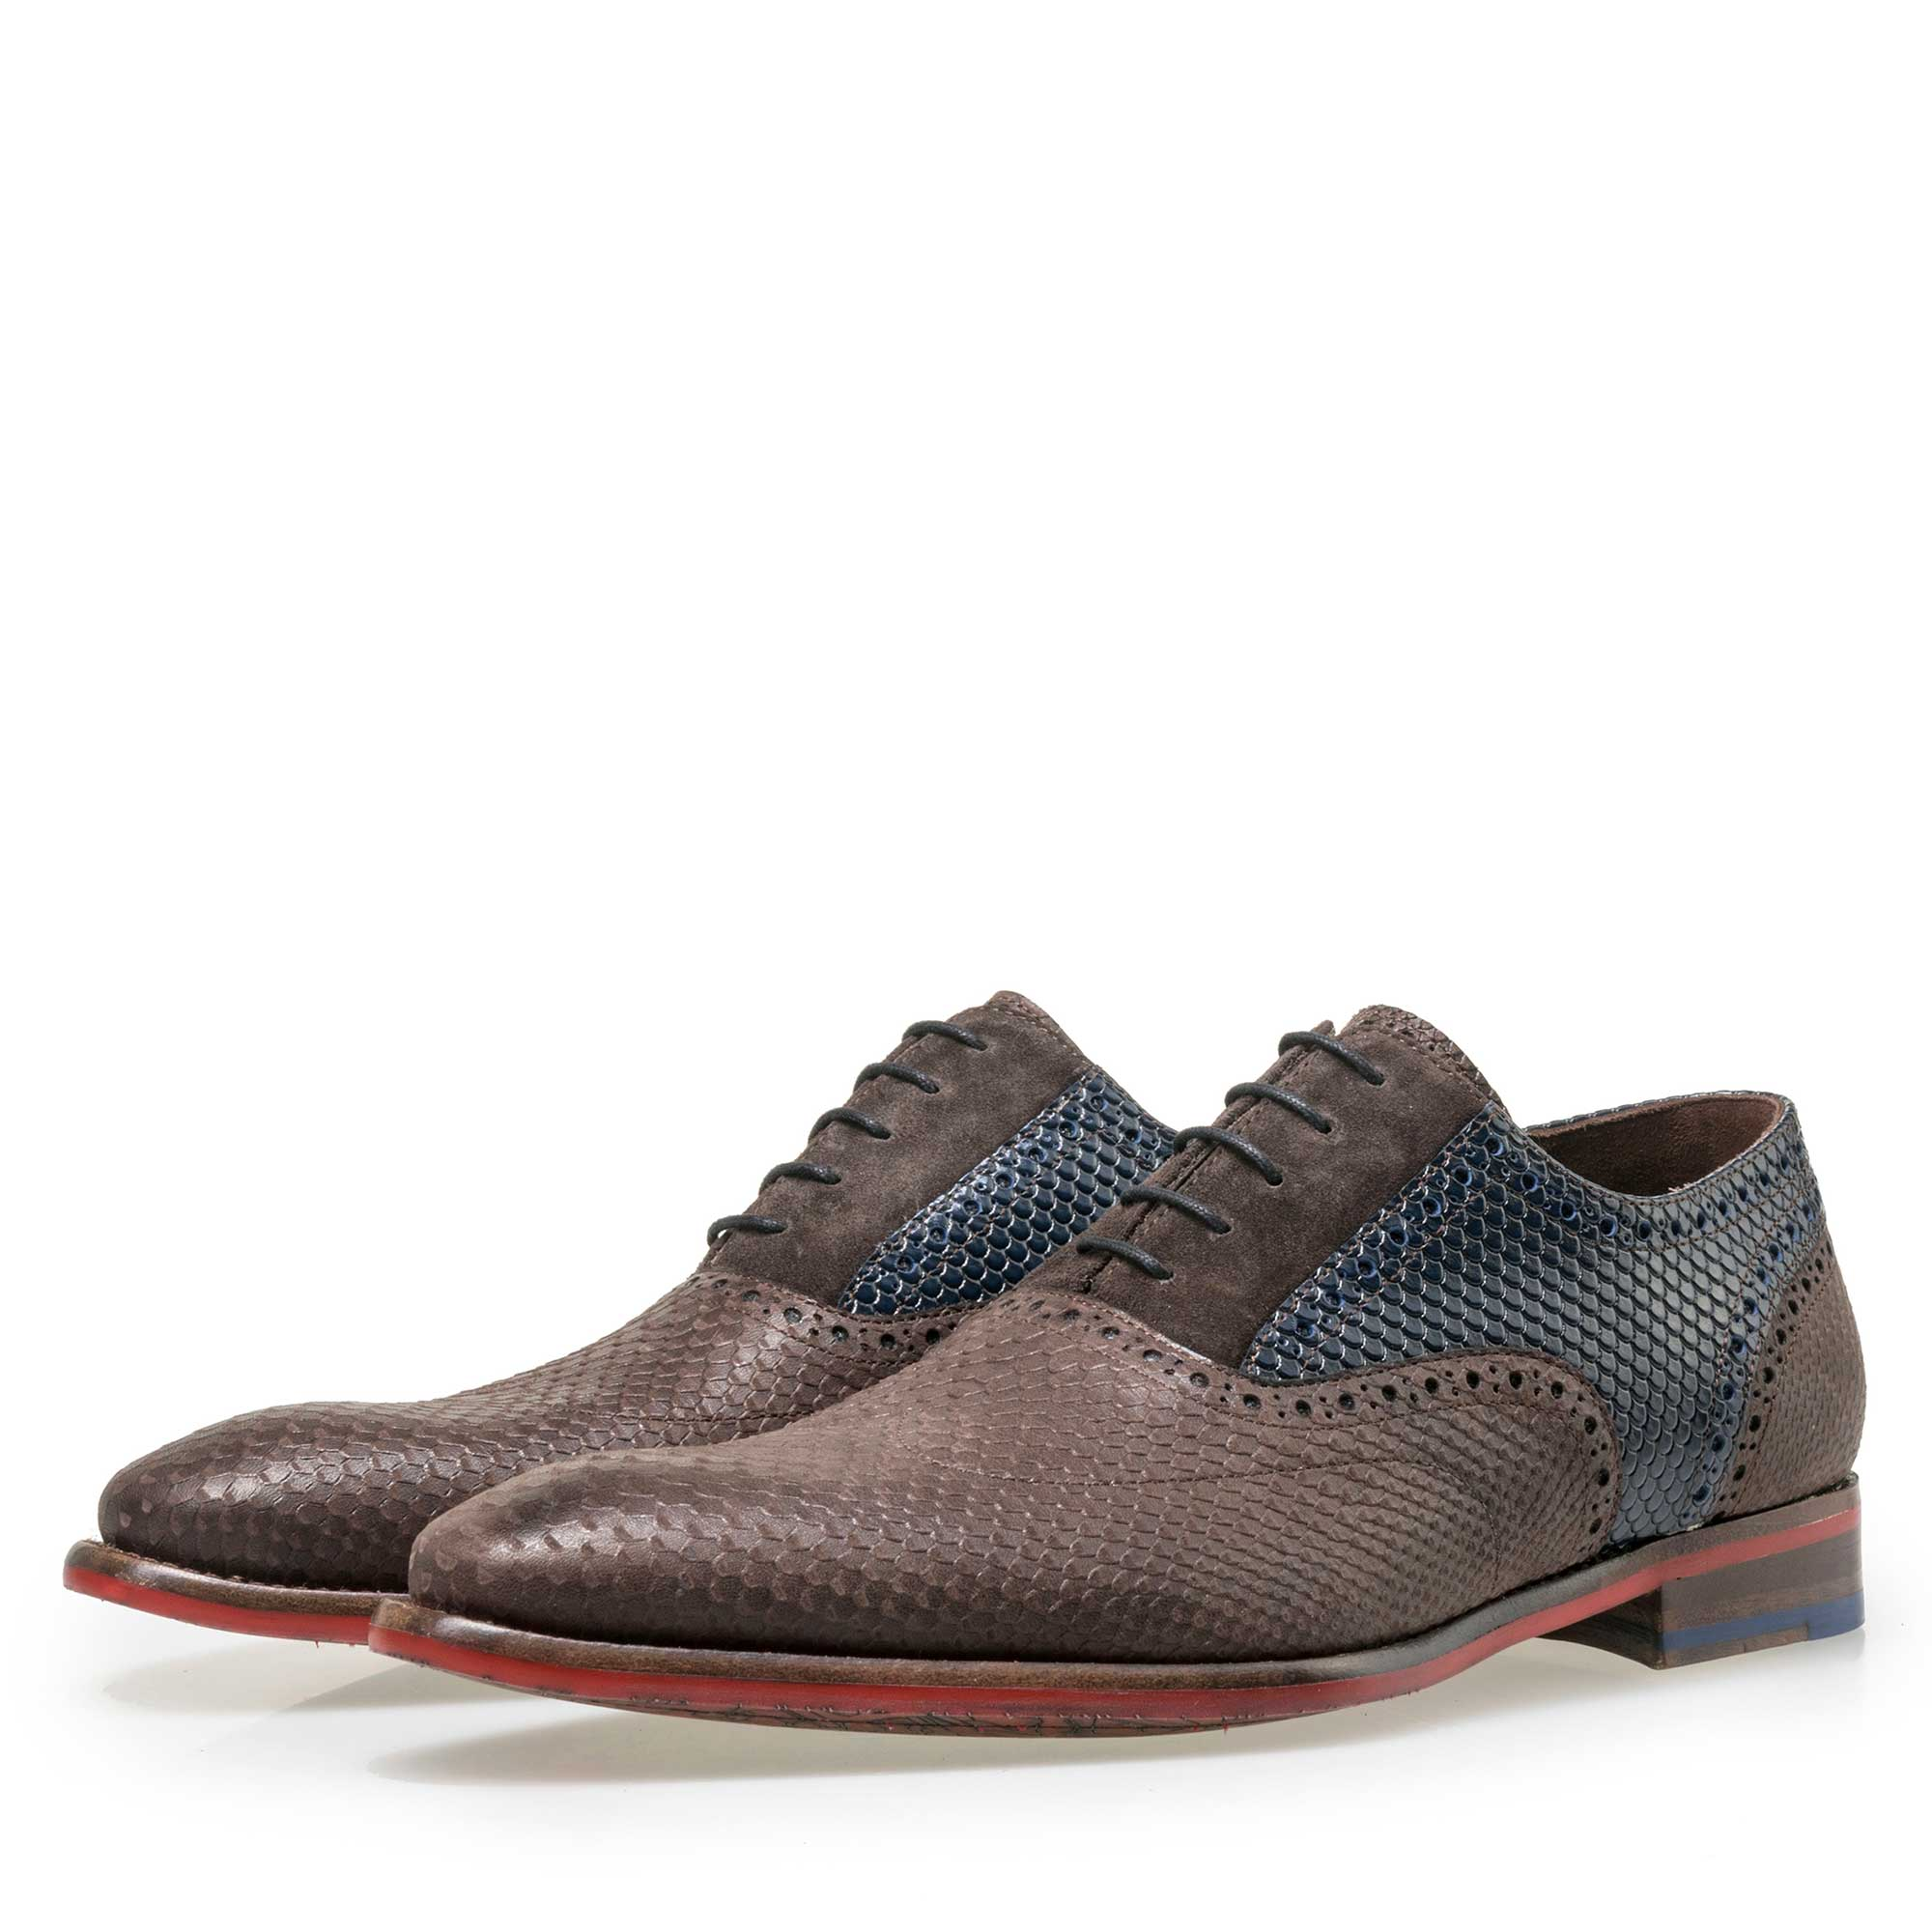 19103/03 - Floris van Bommel men's dark brown leather lace shoe